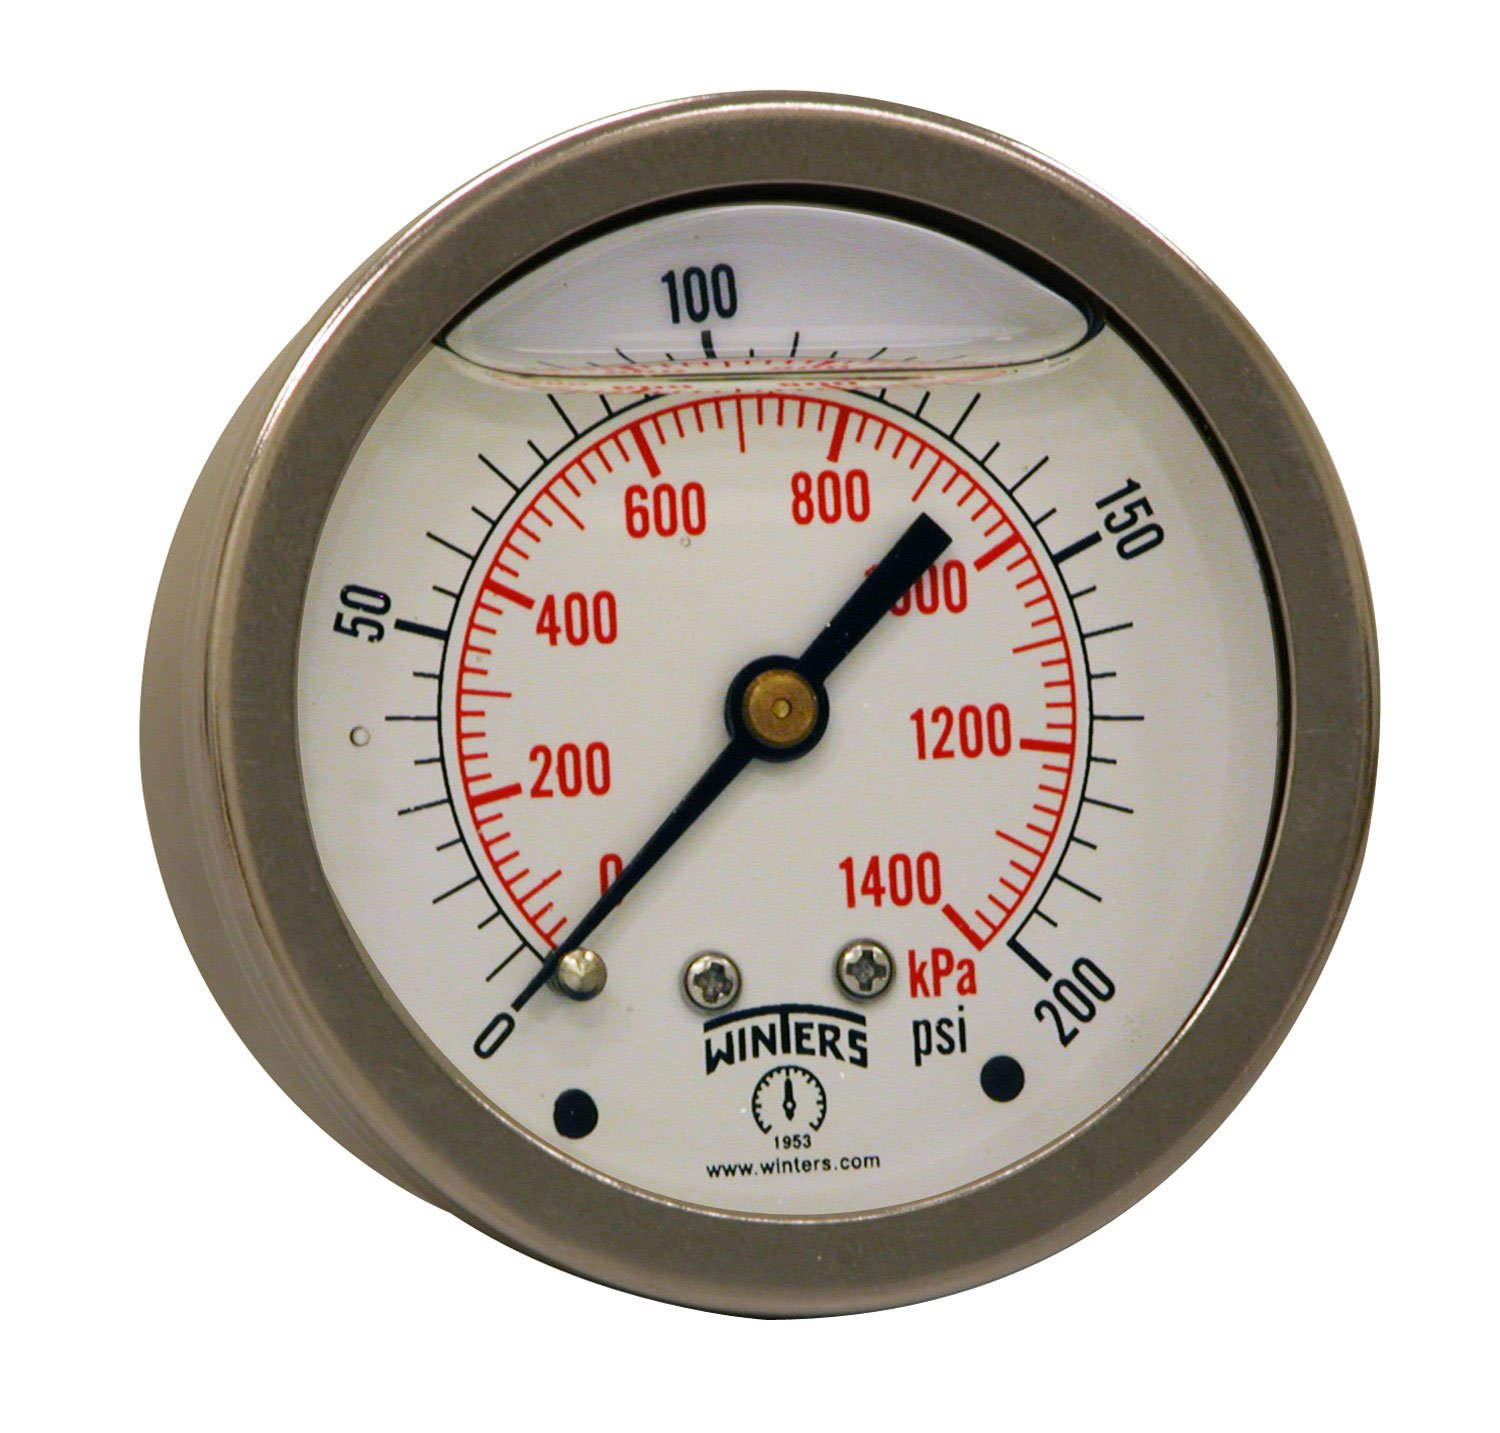 """Winters PFQ Series Stainless Steel 304 Dual Scale Liquid Filled Pressure Gauge with Brass Internals, 0-200 psi/kpa,2-1/2"""" Dial Display, +/-1.5% Accuracy, 1/4"""" NPT Center Back Mount"""